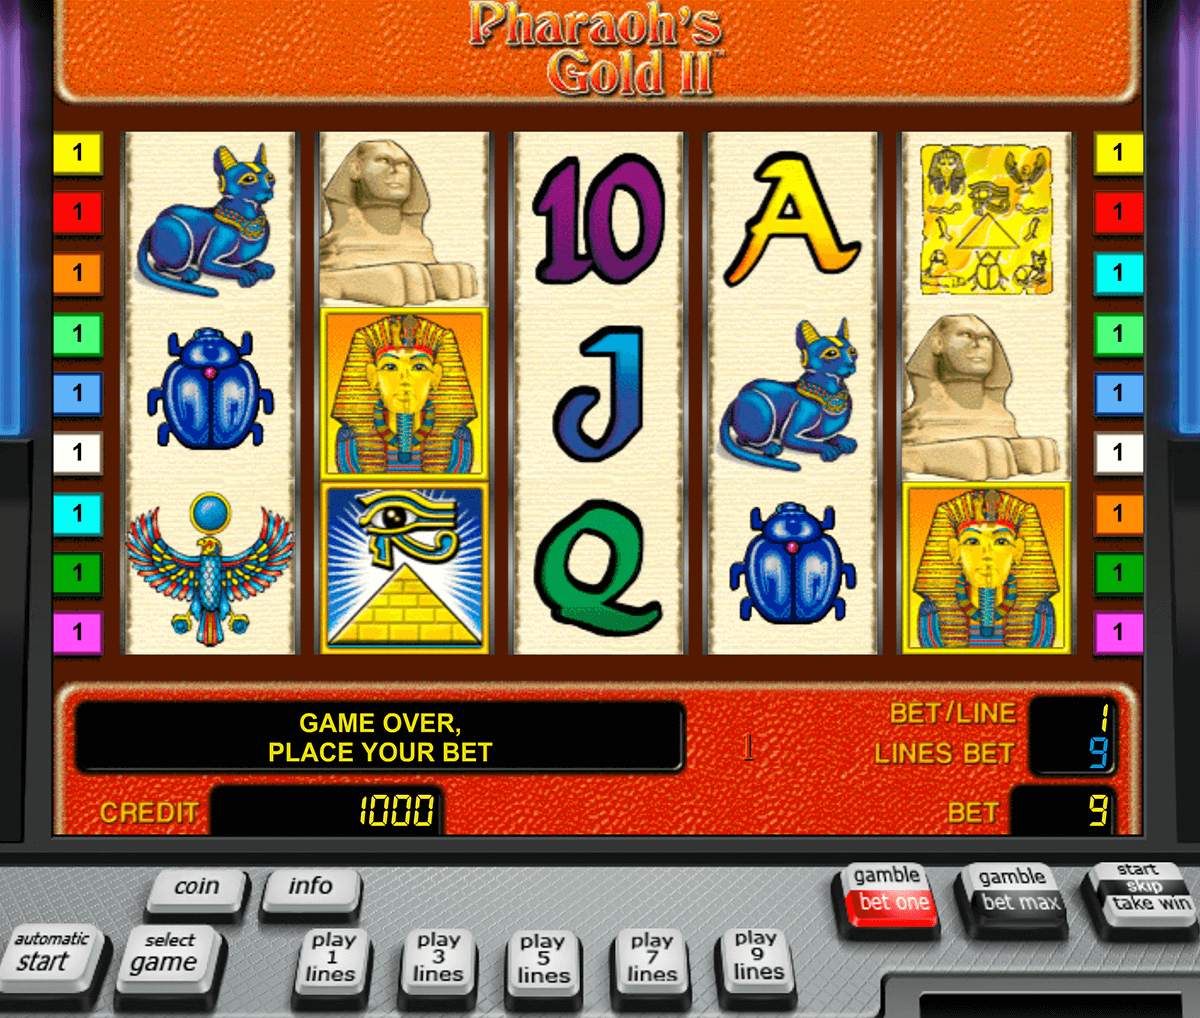 pharaohs gold ii novomatic slot machine